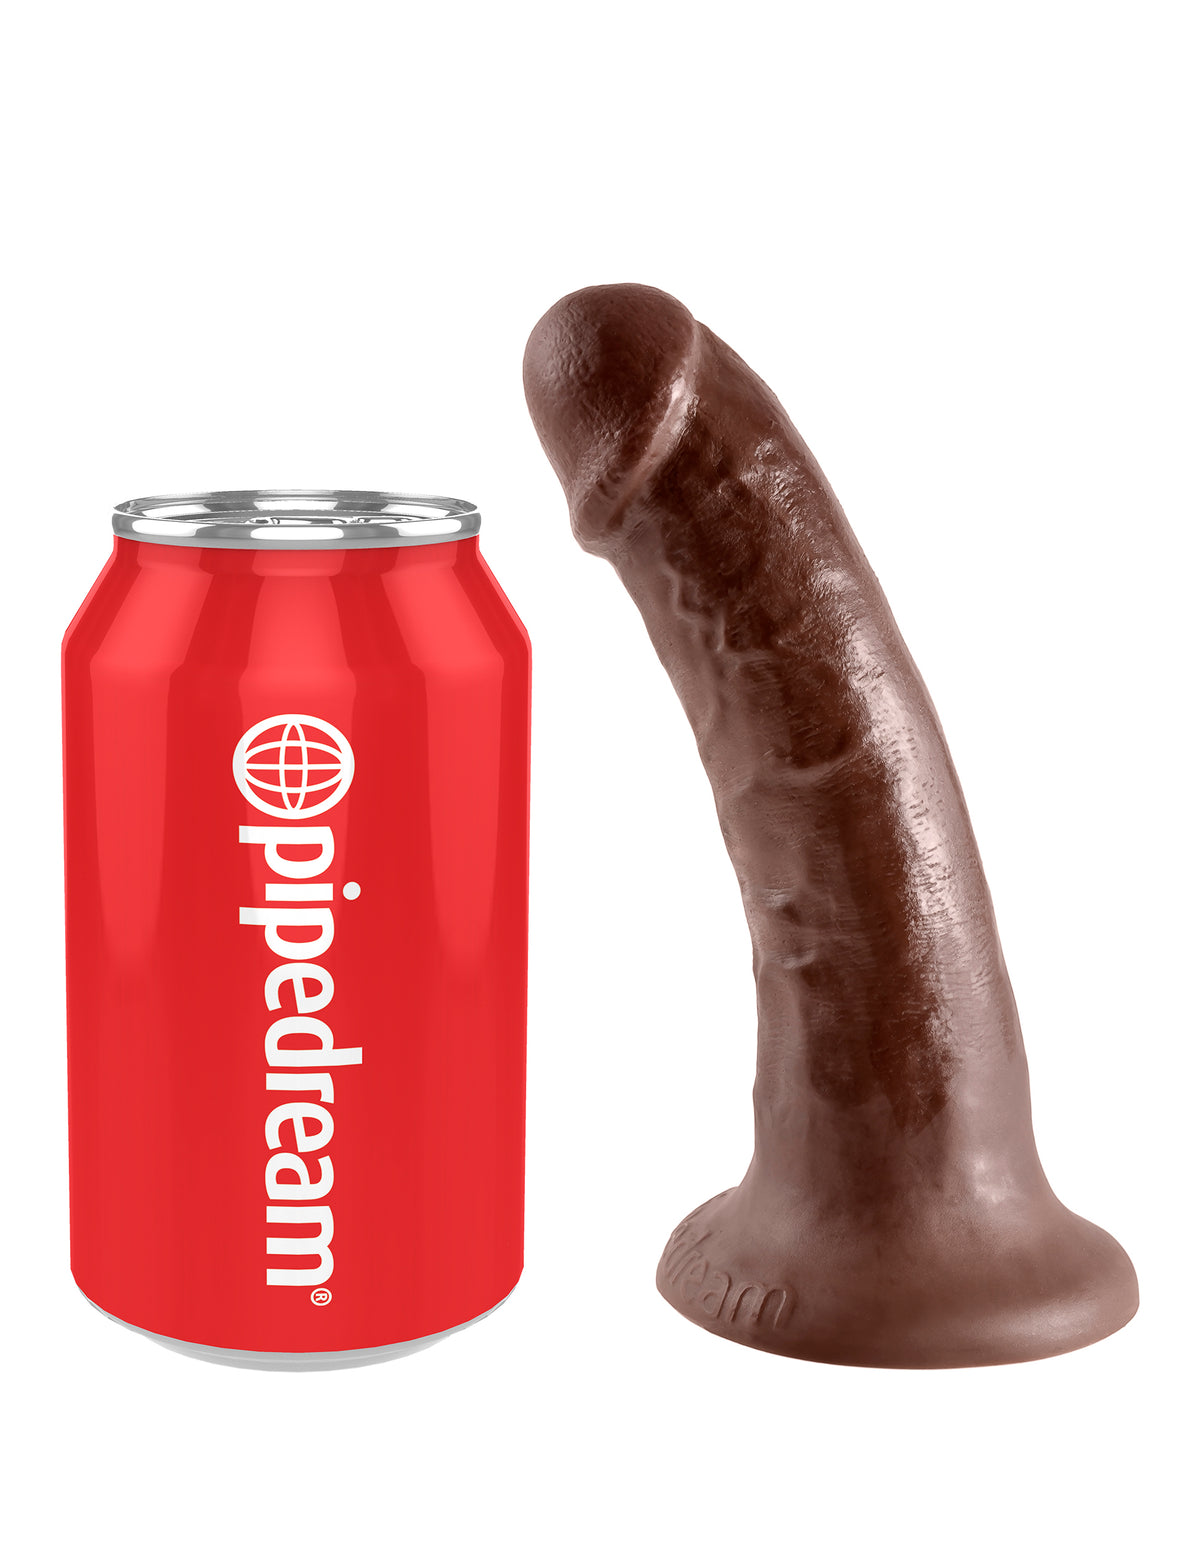 King Cock 6 inch Cock Brown | Dildos, Vibrator, Realistic Dildos, Sex Toys For Women, Sex Toys, Adult Toys | My Sex Shop